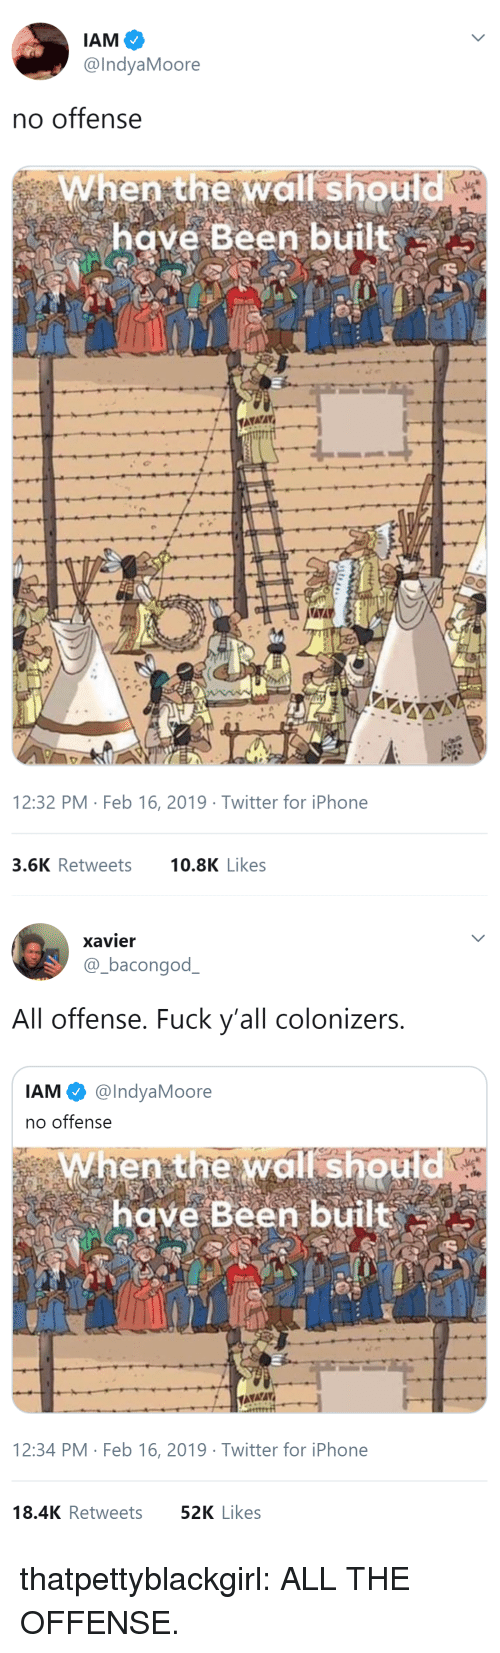 No Offense: @IndyaMoore  no offense  When the wall should  have Been built  12:32 PM Feb 16, 2019 Twitter for iPhone  3.6K Retweets 0.8K Likes   xavier  @-bacongodー  All offense. Fuck y'all colonizers  IAM @IndyaMoore  no offense  When the wall should  have Been built  12:34 PM Feb 16, 2019 Twitter for iPhone  18.4K Retweets  52K Likes thatpettyblackgirl:   ALL THE OFFENSE.